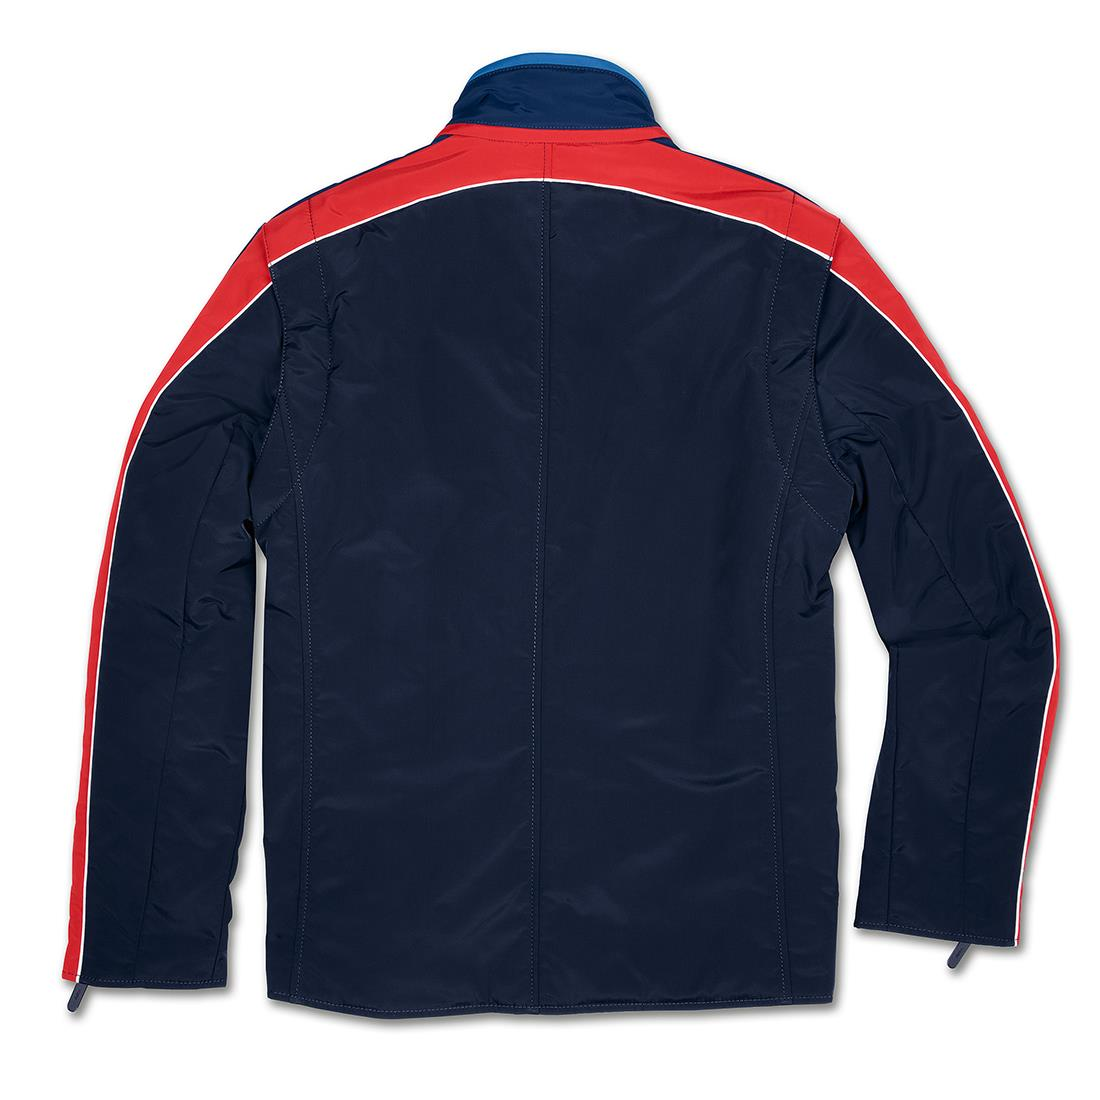 BMW Classic Men's Motorsport Jacket